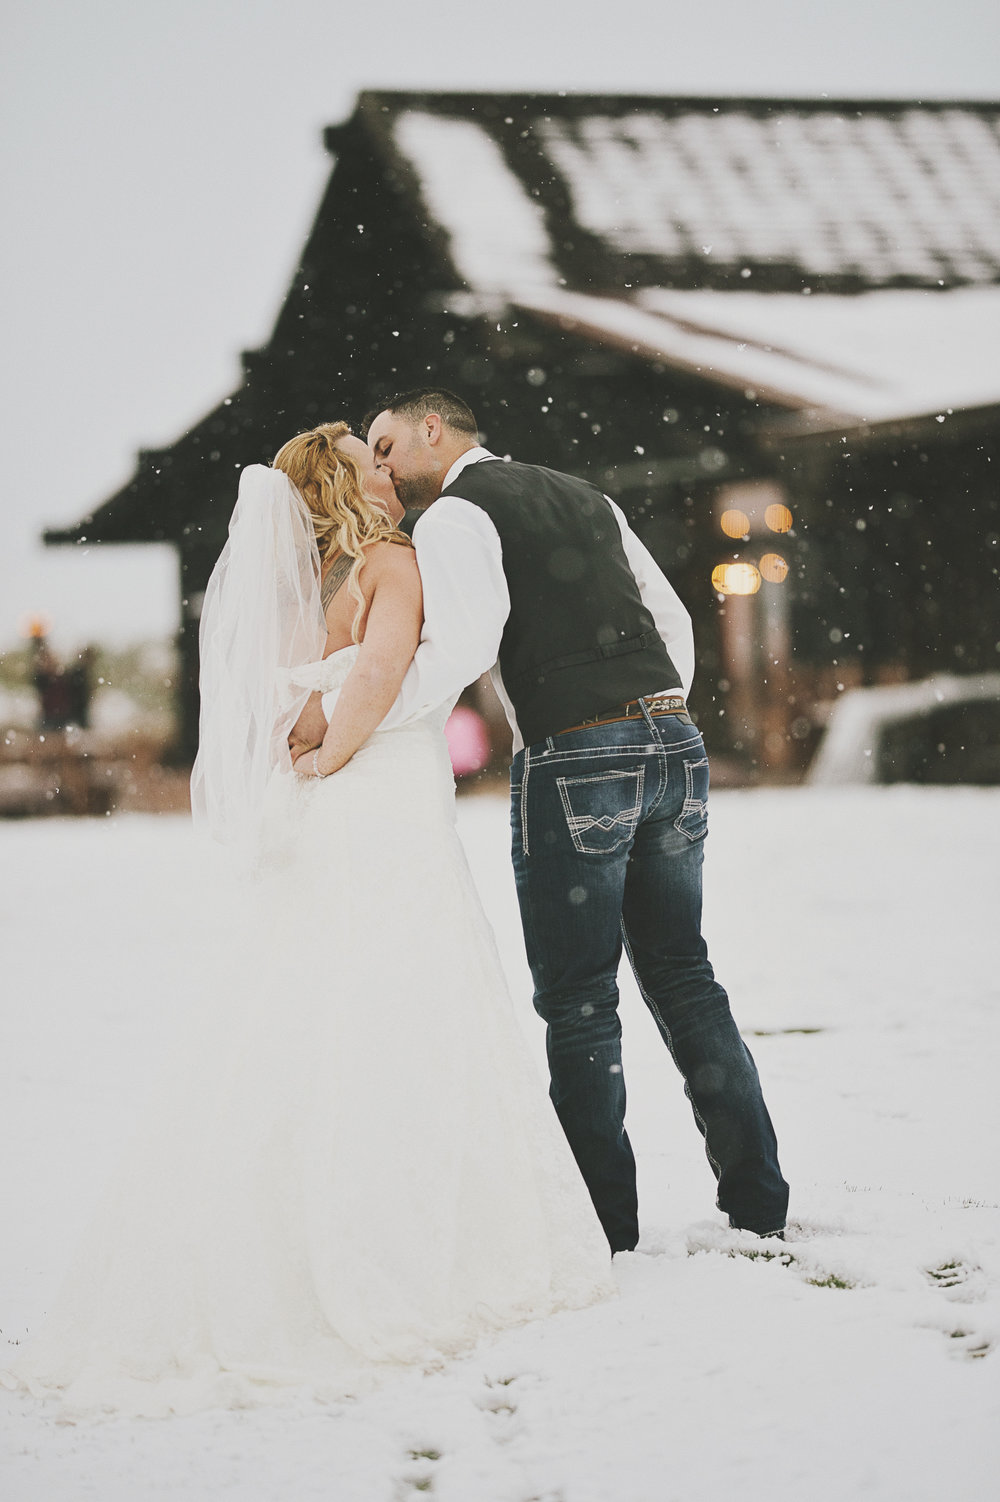 Winter Montana Wedding_Leighanne Parker + Ethan Ramos_Kelsey Lane Photography-8152 copy.jpg